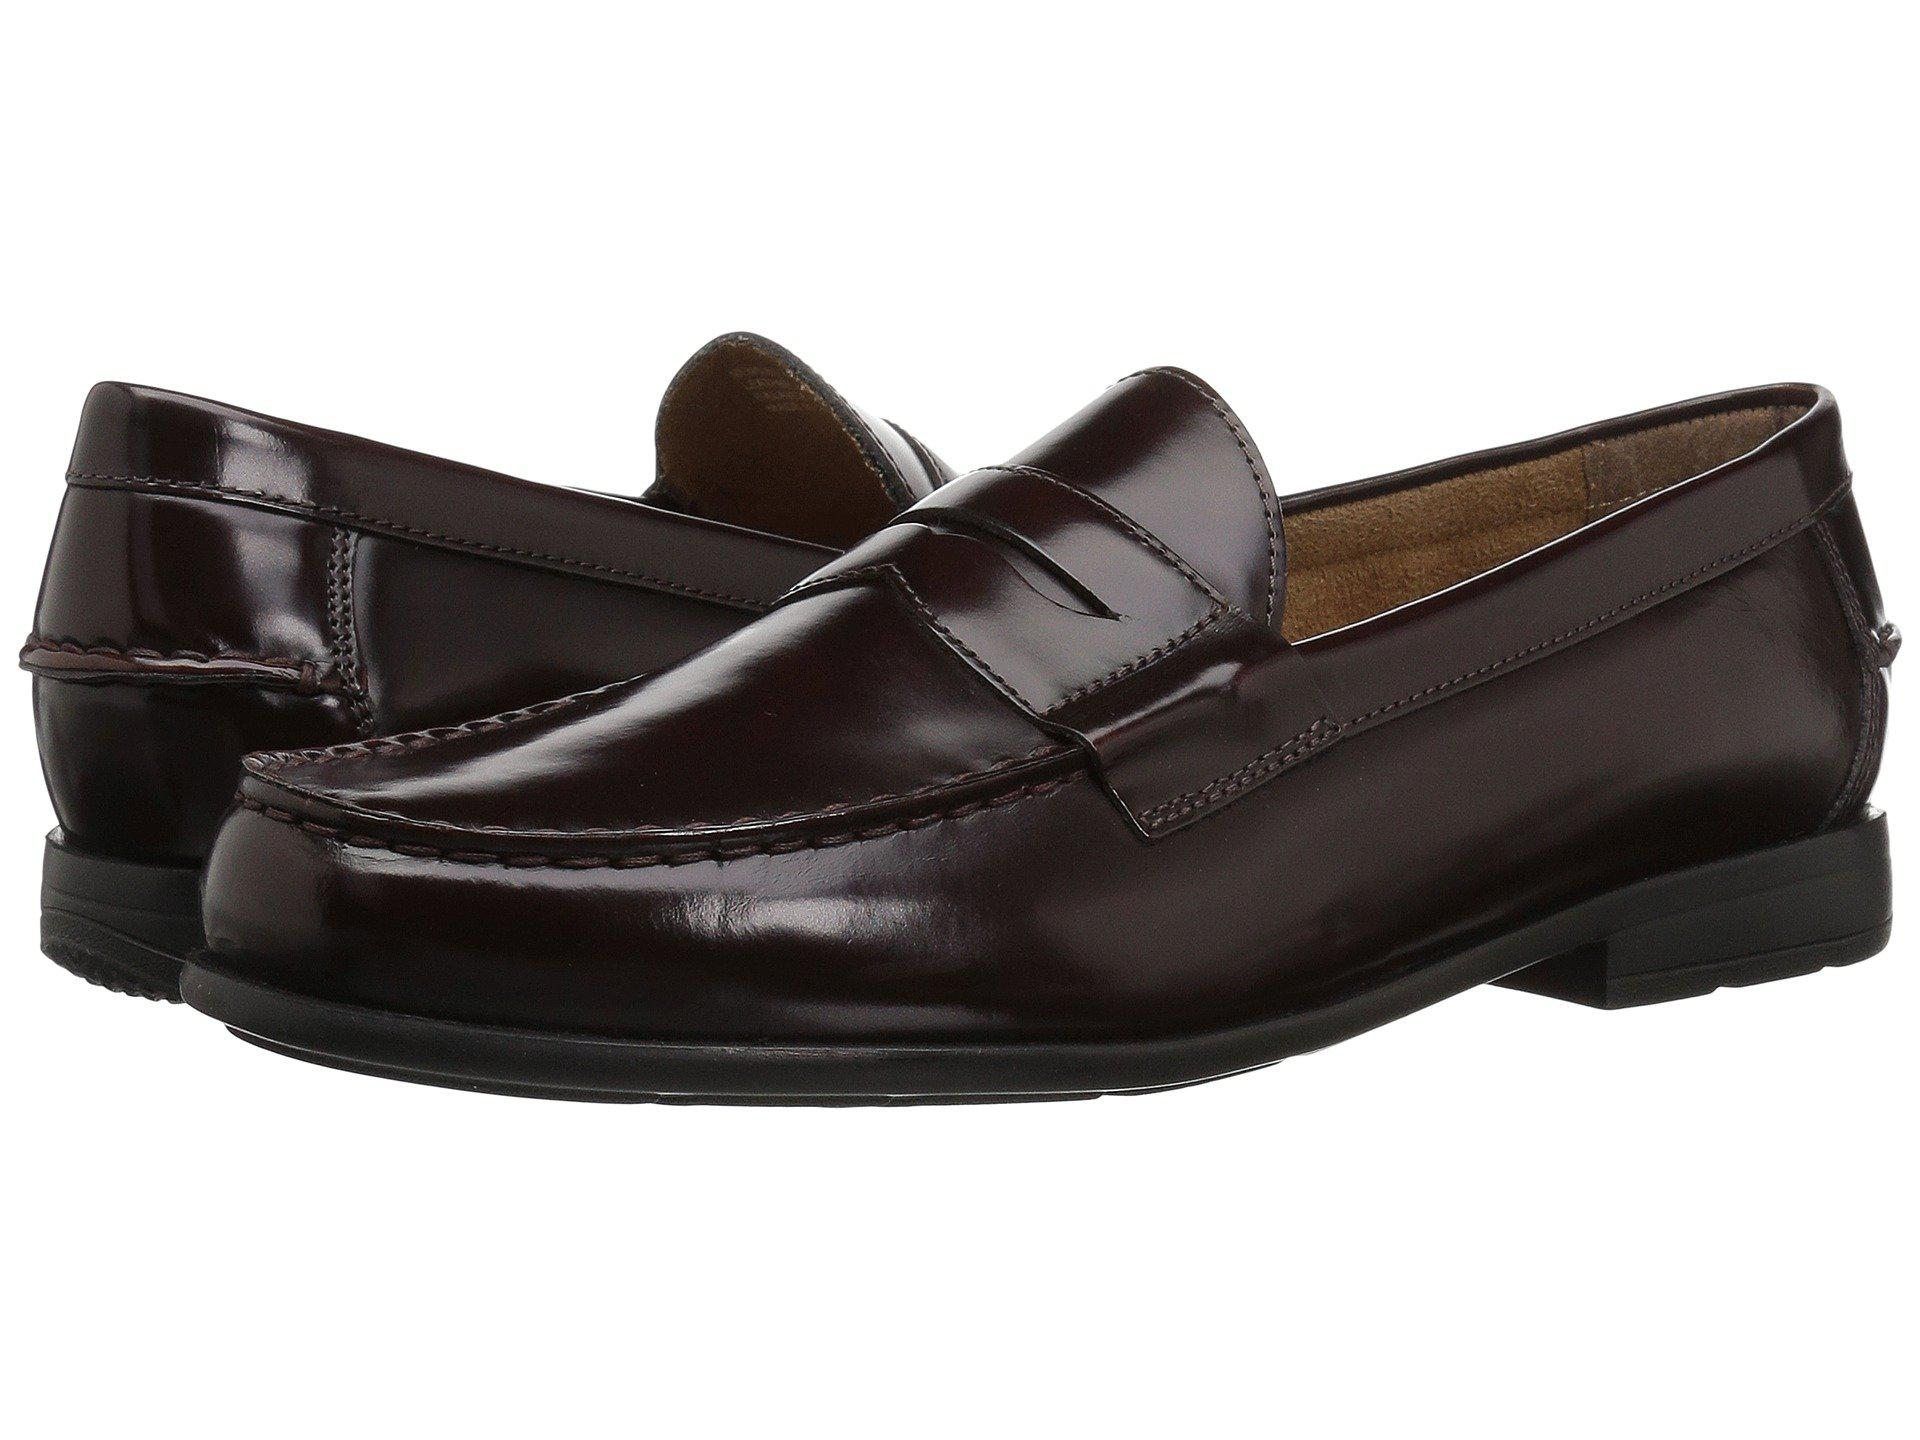 3536840afc2 Nunn Bush. Drexel Moc Toe Penny Loafer With Kore Walking Comfort Technology  (brown scotch) ...